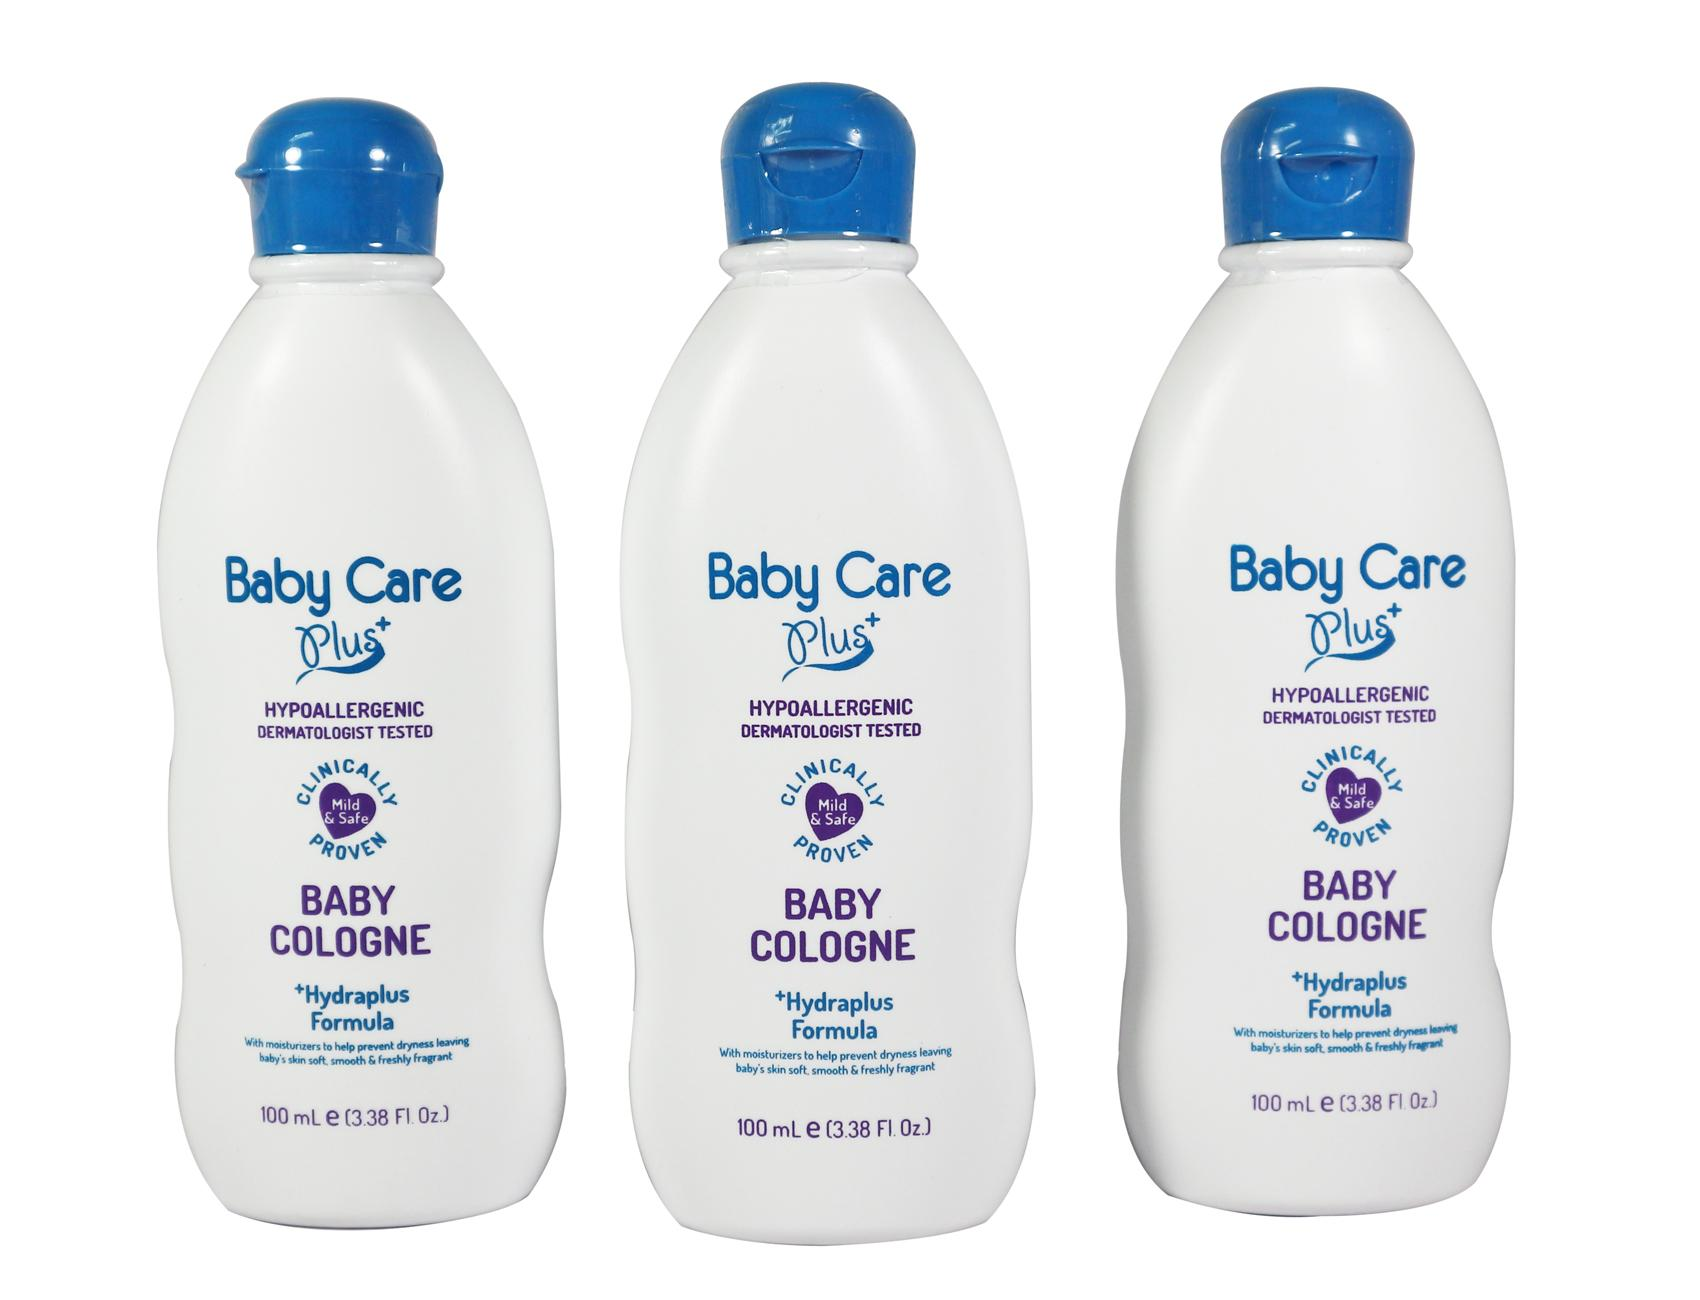 Baby Shampoos For Sale No Tears Shampoo Online Brands Prices Cussons Coconut Oil And Aloe Vera 100 Ml Care Plus Cologne Set Of 3 100ml